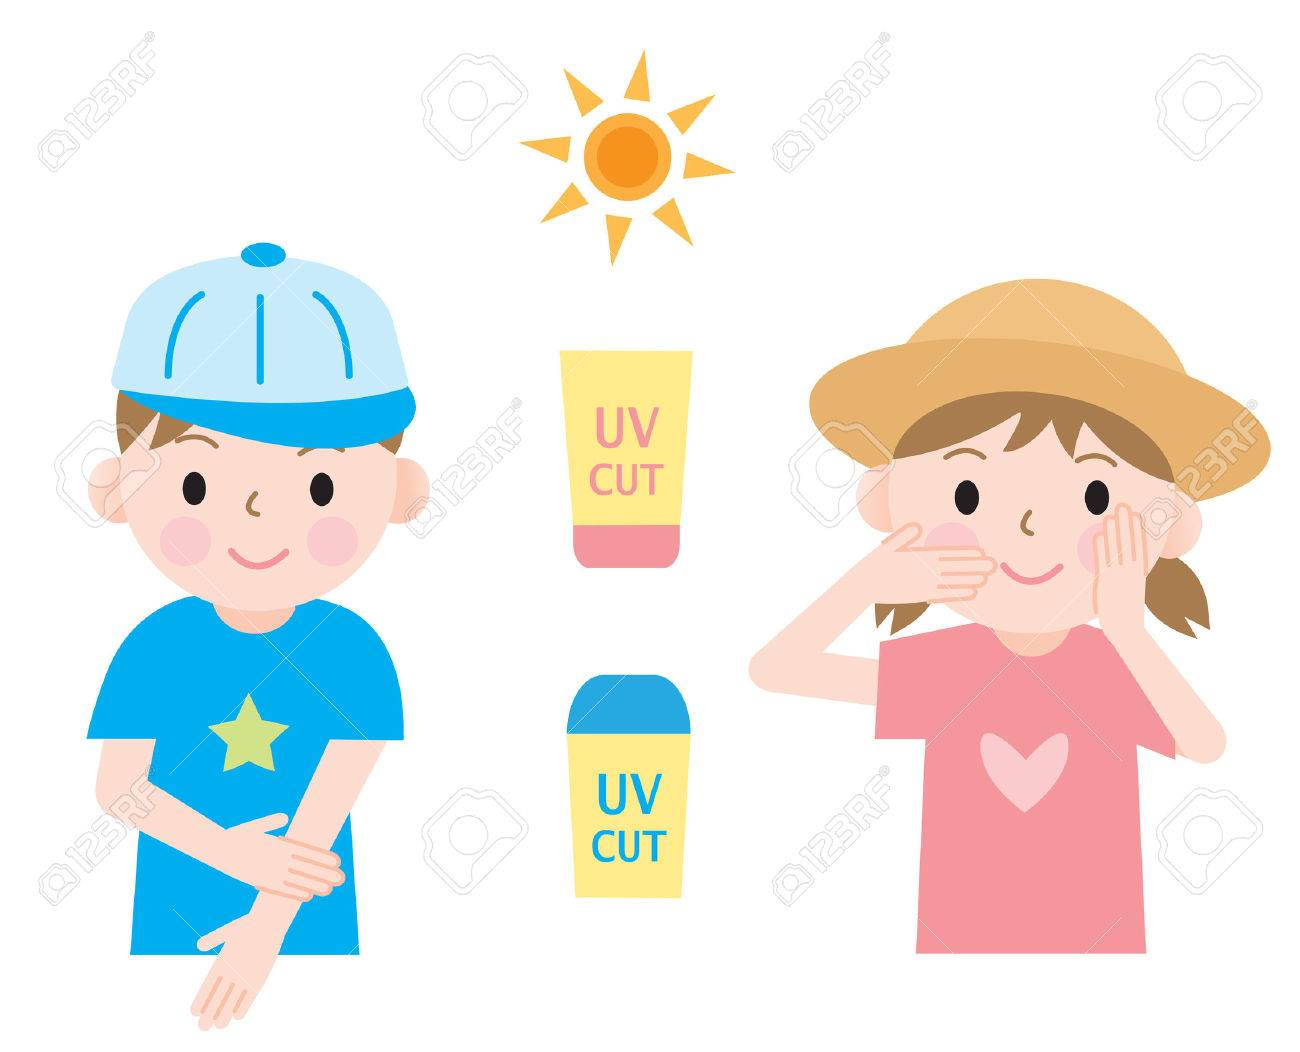 c0f9ddbd3de kids protect their skin from ultraviolet rays with hats and sunscreen. Stock  Vector - 59920826